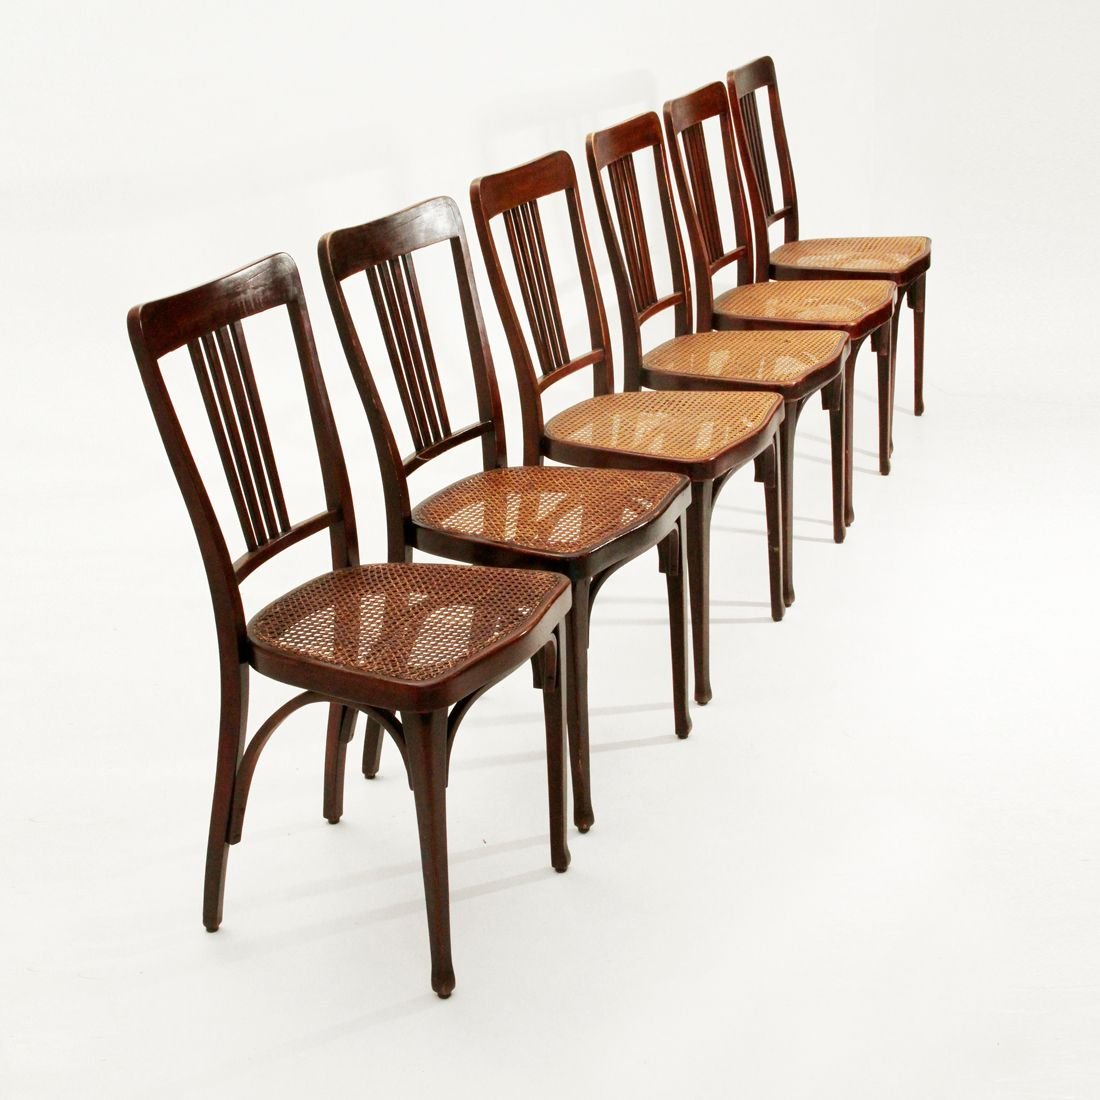 jugendstil mod 675 st hle von thonet 1900er 6er set bei pamono kaufen. Black Bedroom Furniture Sets. Home Design Ideas